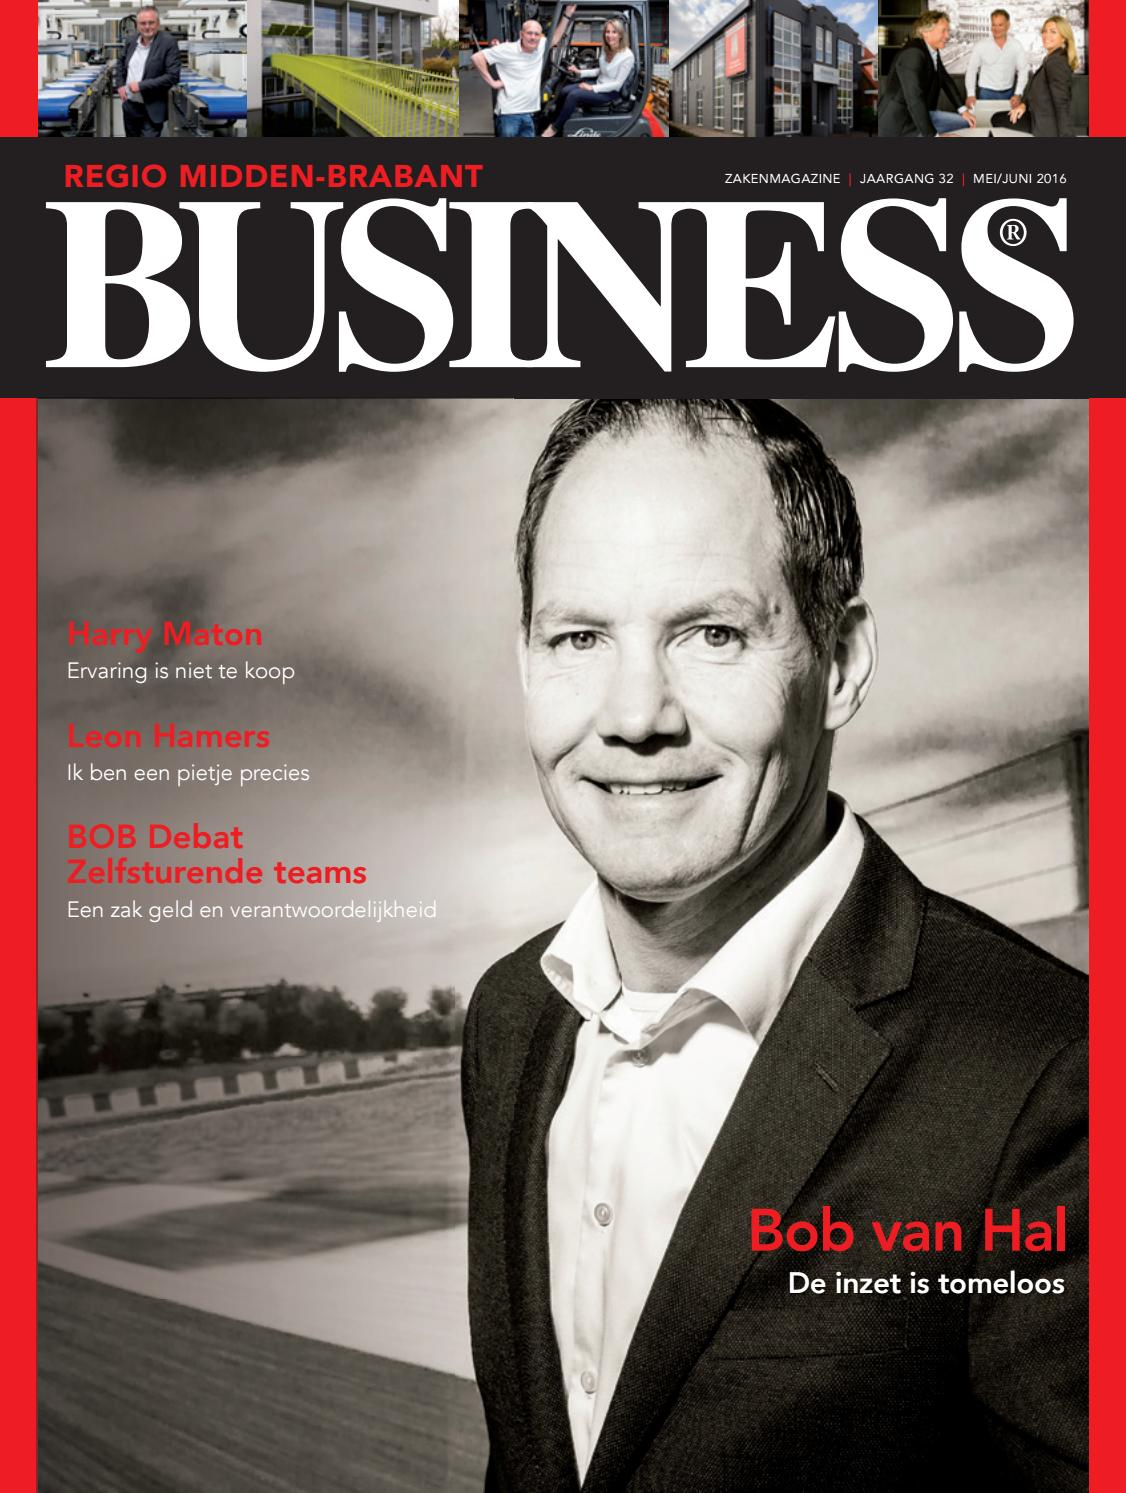 Regio business midden brabant nov/dec 2012 by regio business   issuu